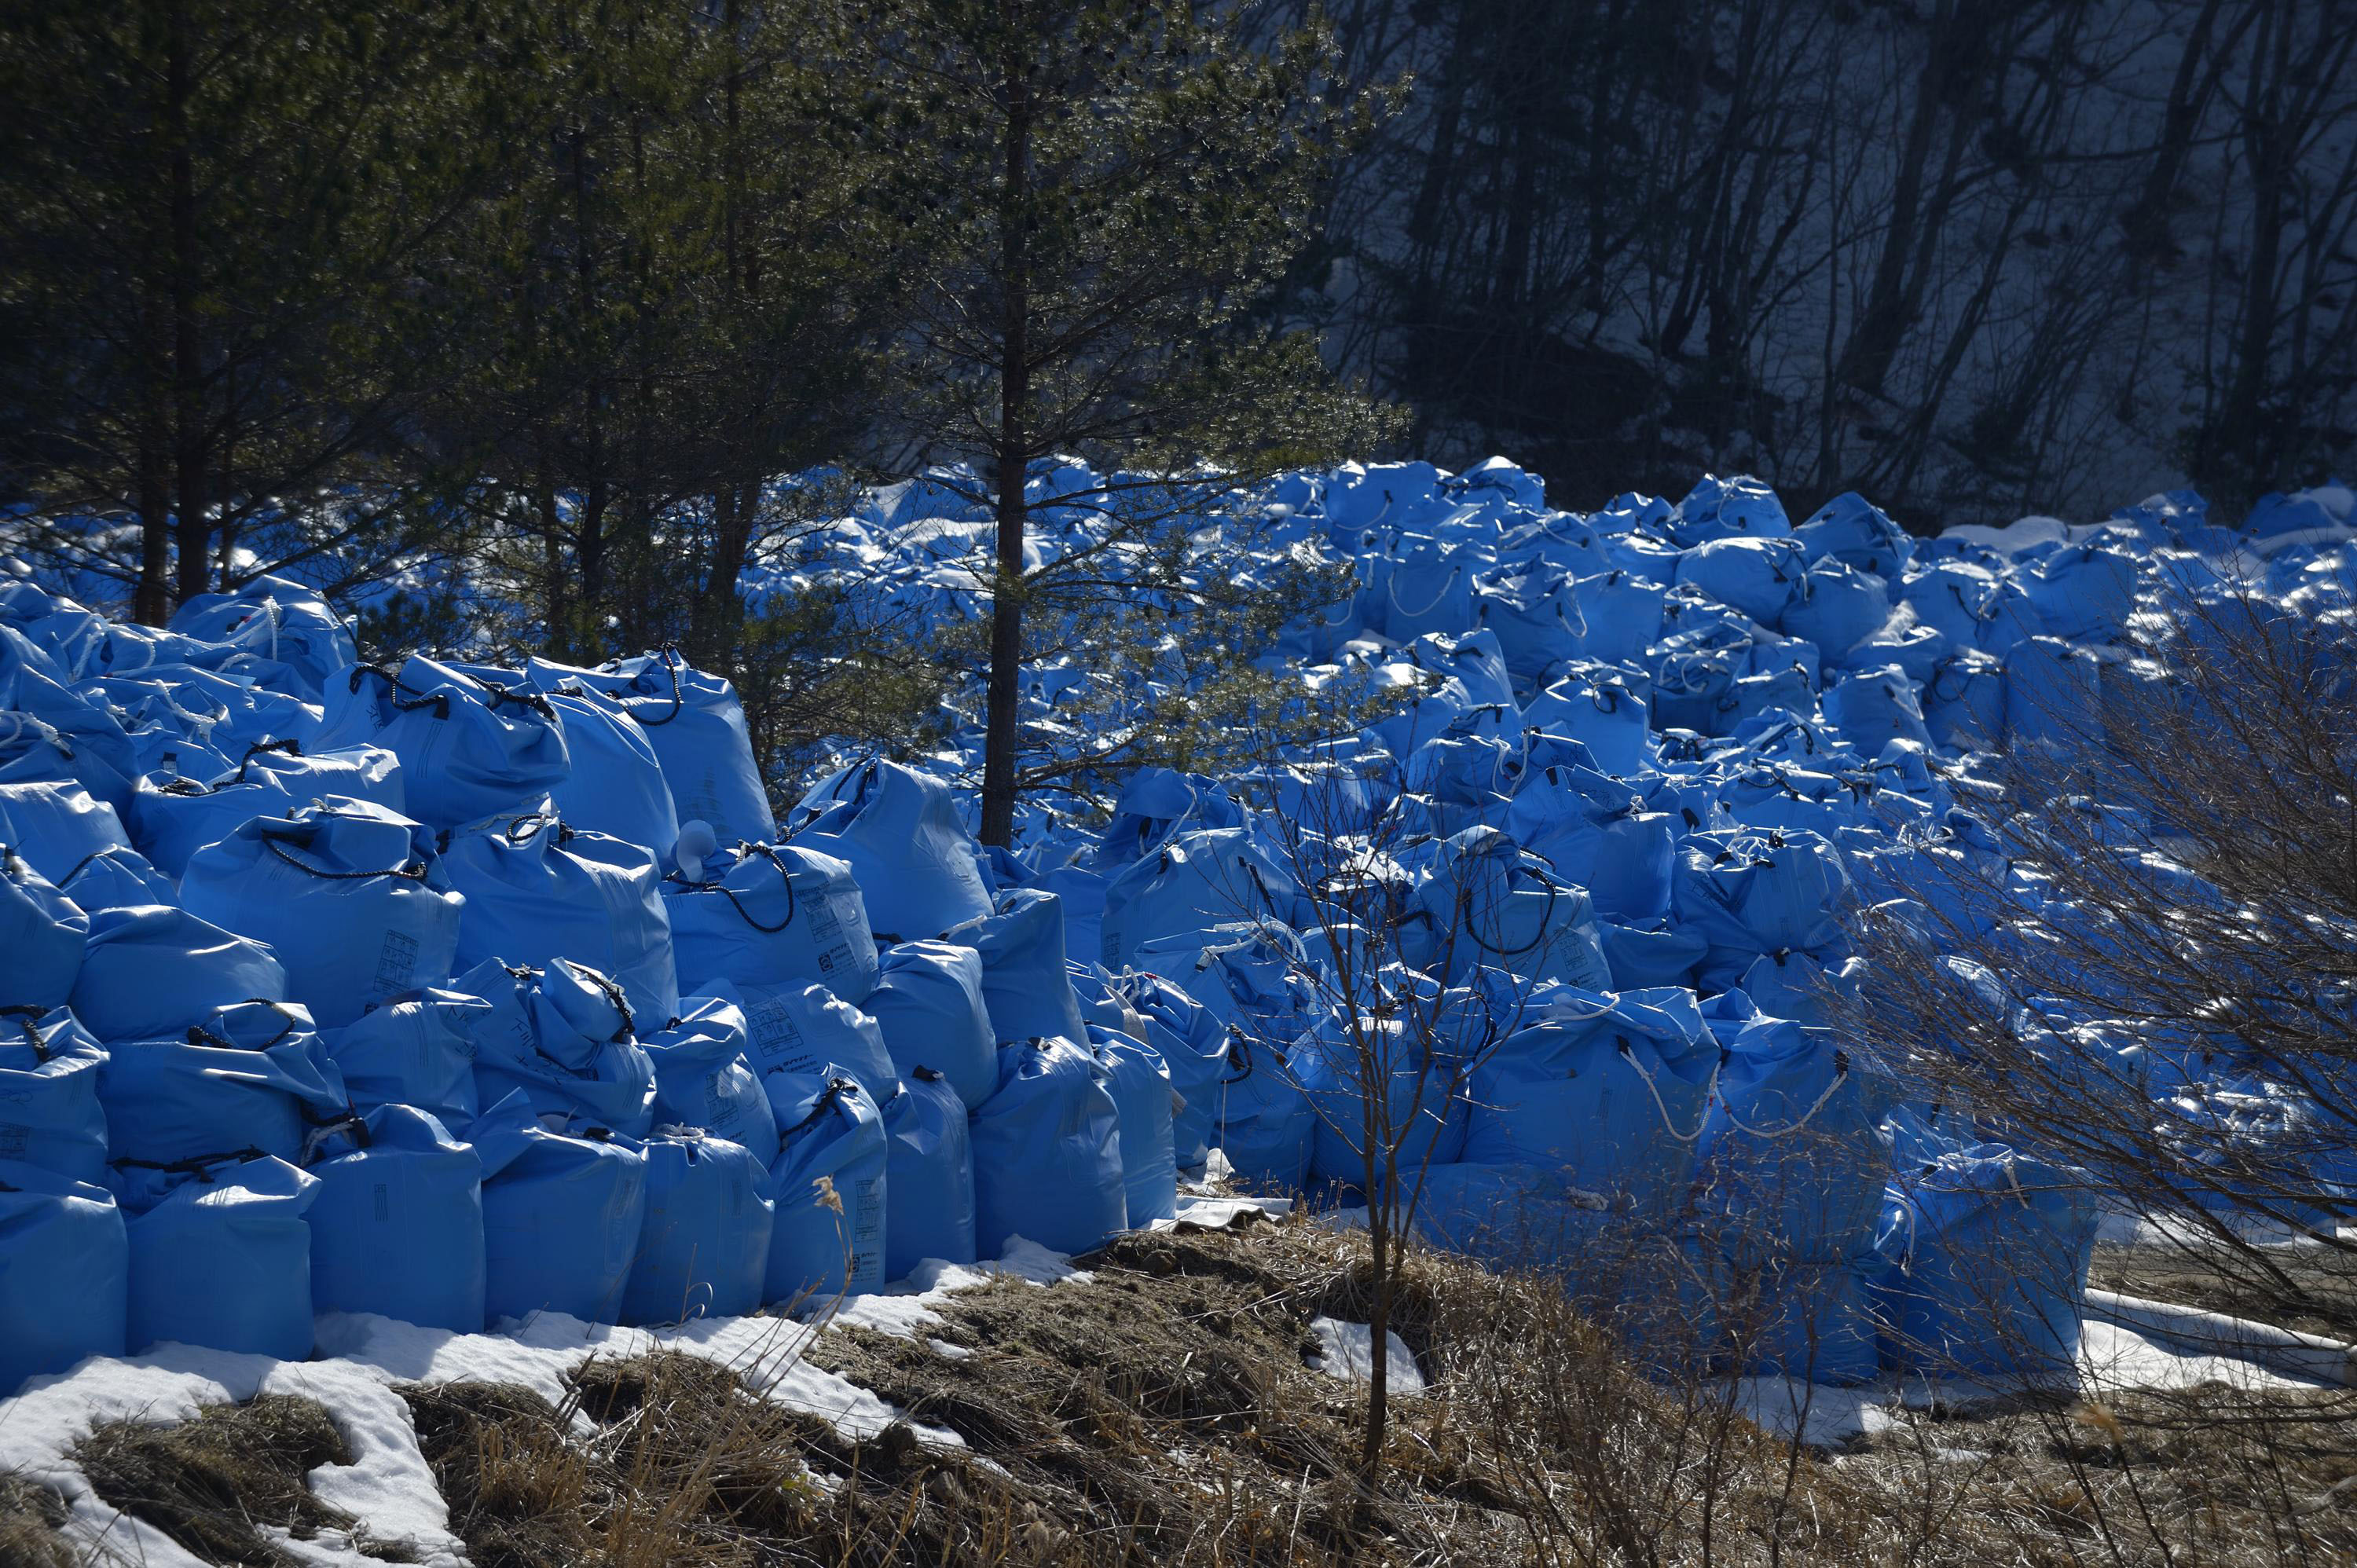 Bags containing waste left over after radiation decontamination are stored near Kawauchi, Fukushima Prefecture, on March 5.